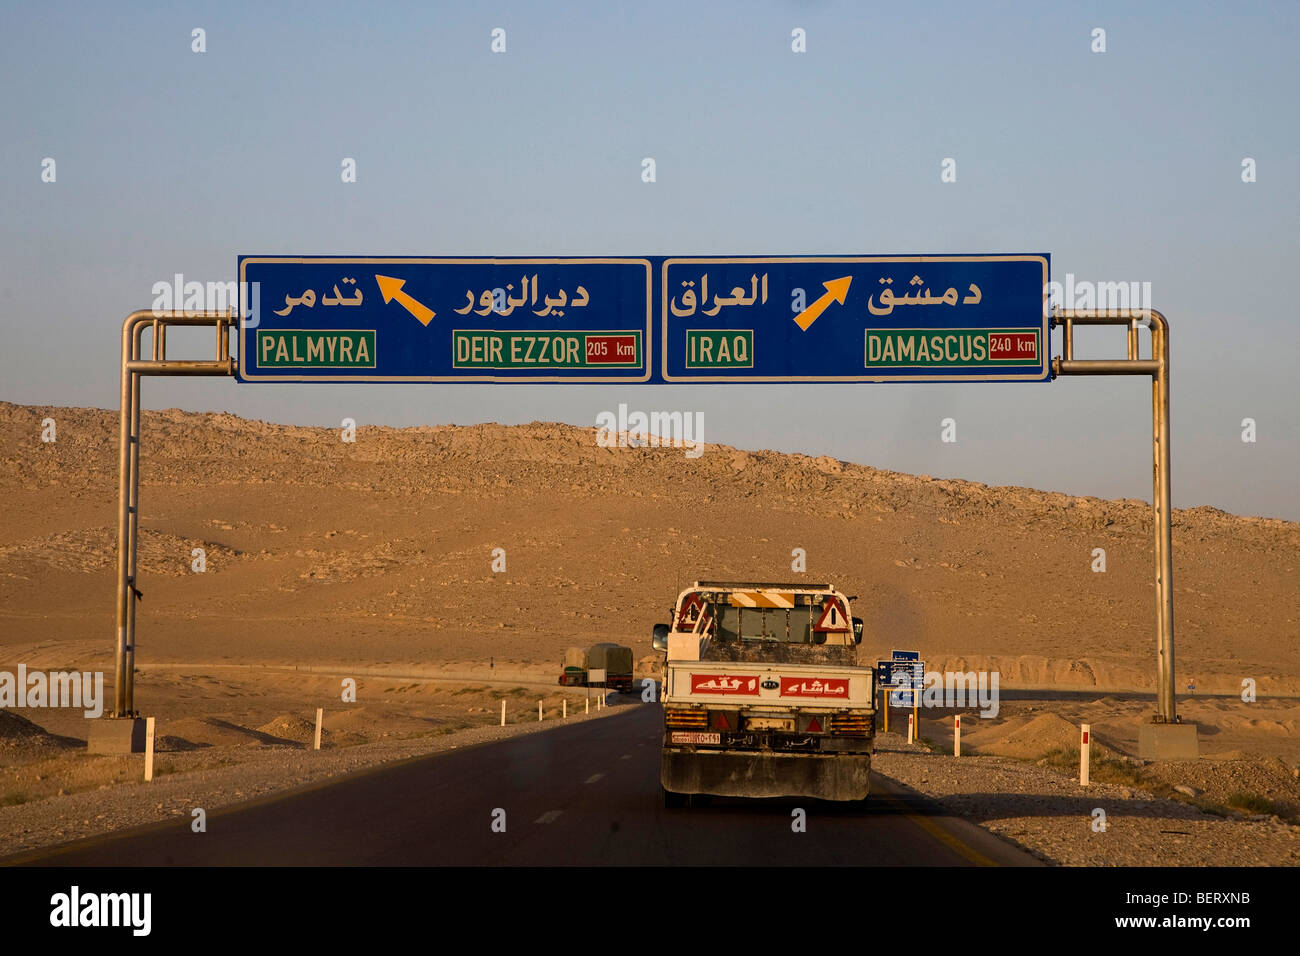 Car In The Desert Near Palmyra Syria Middle East Asia Sign And